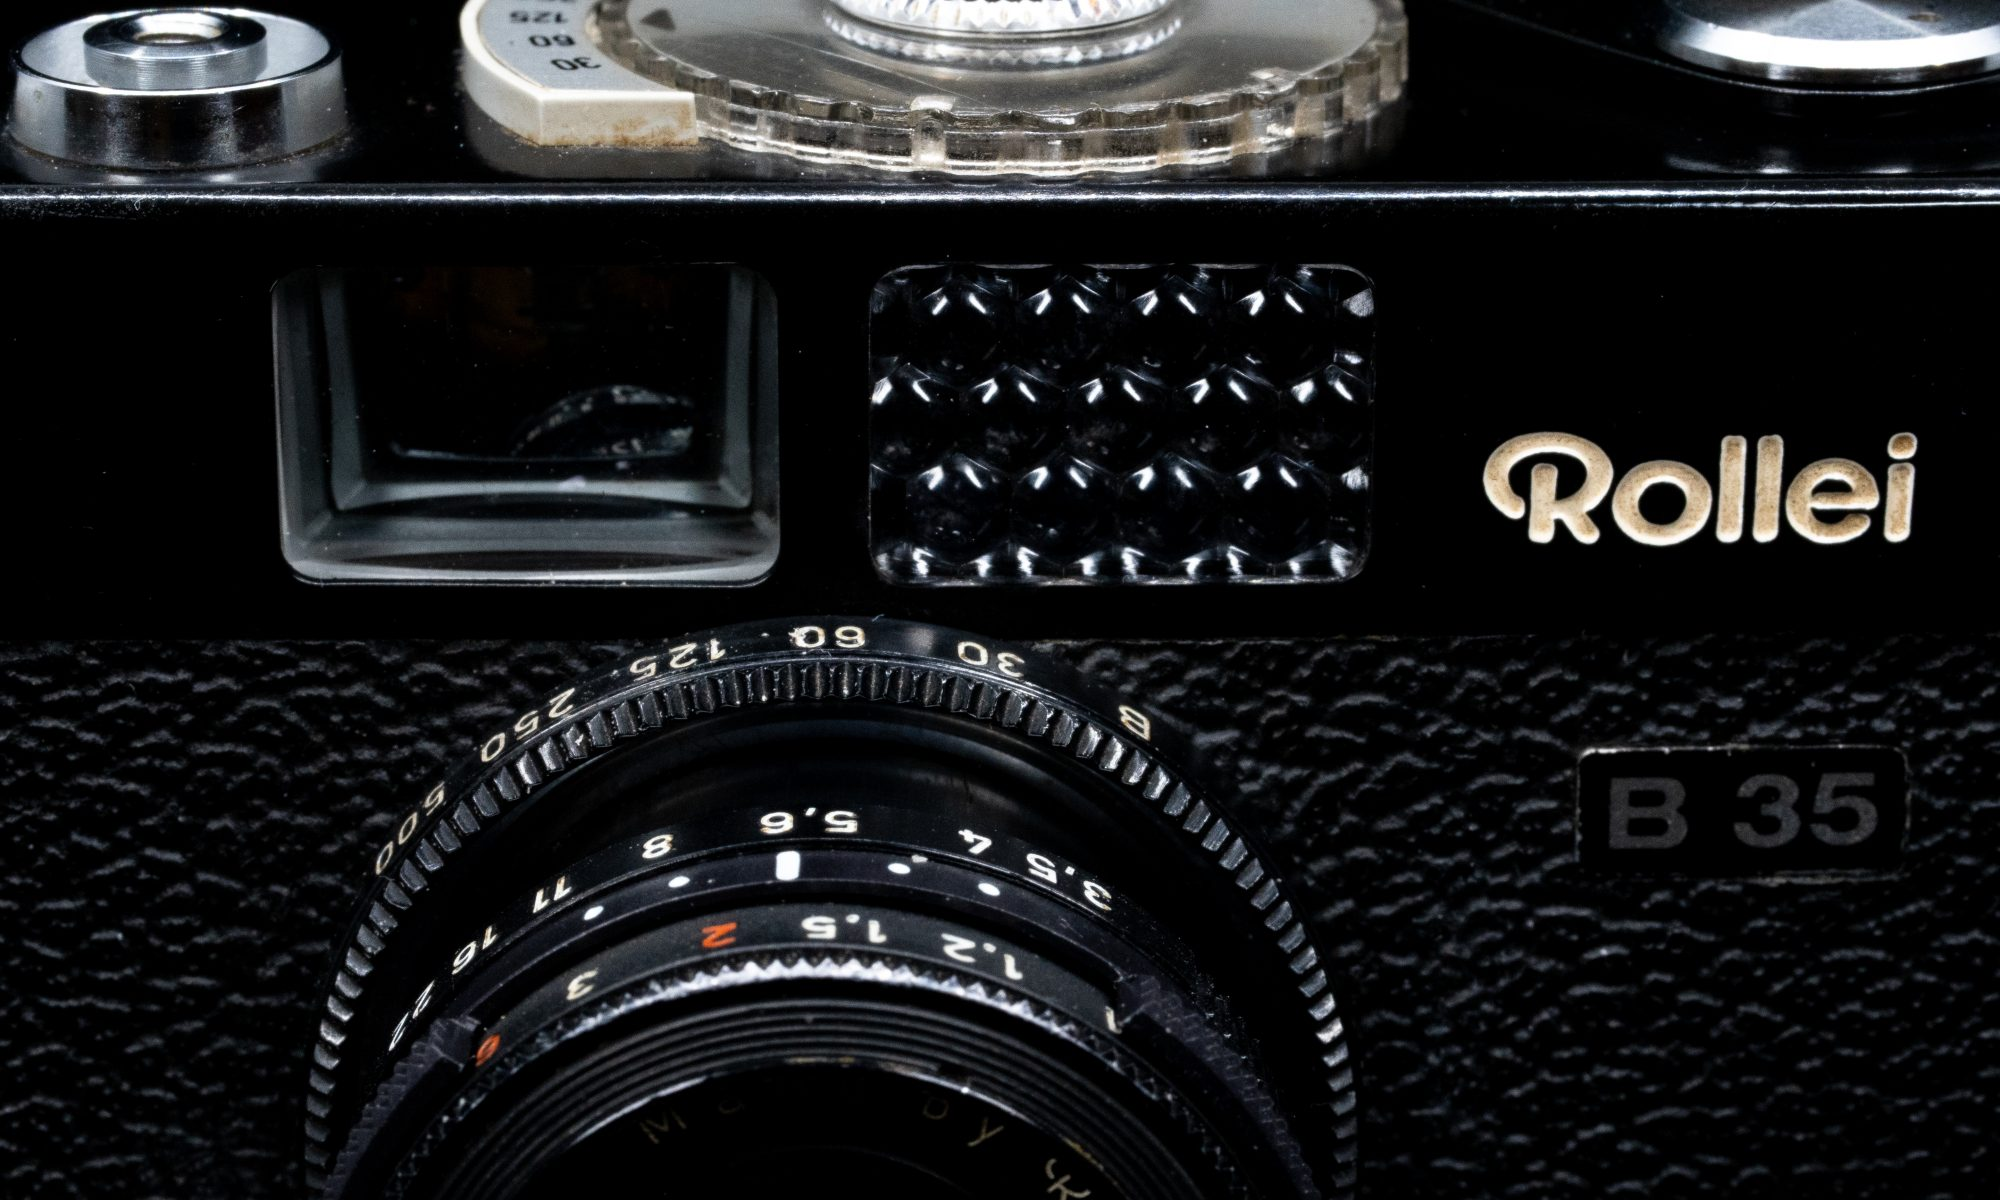 Rollei B35 review